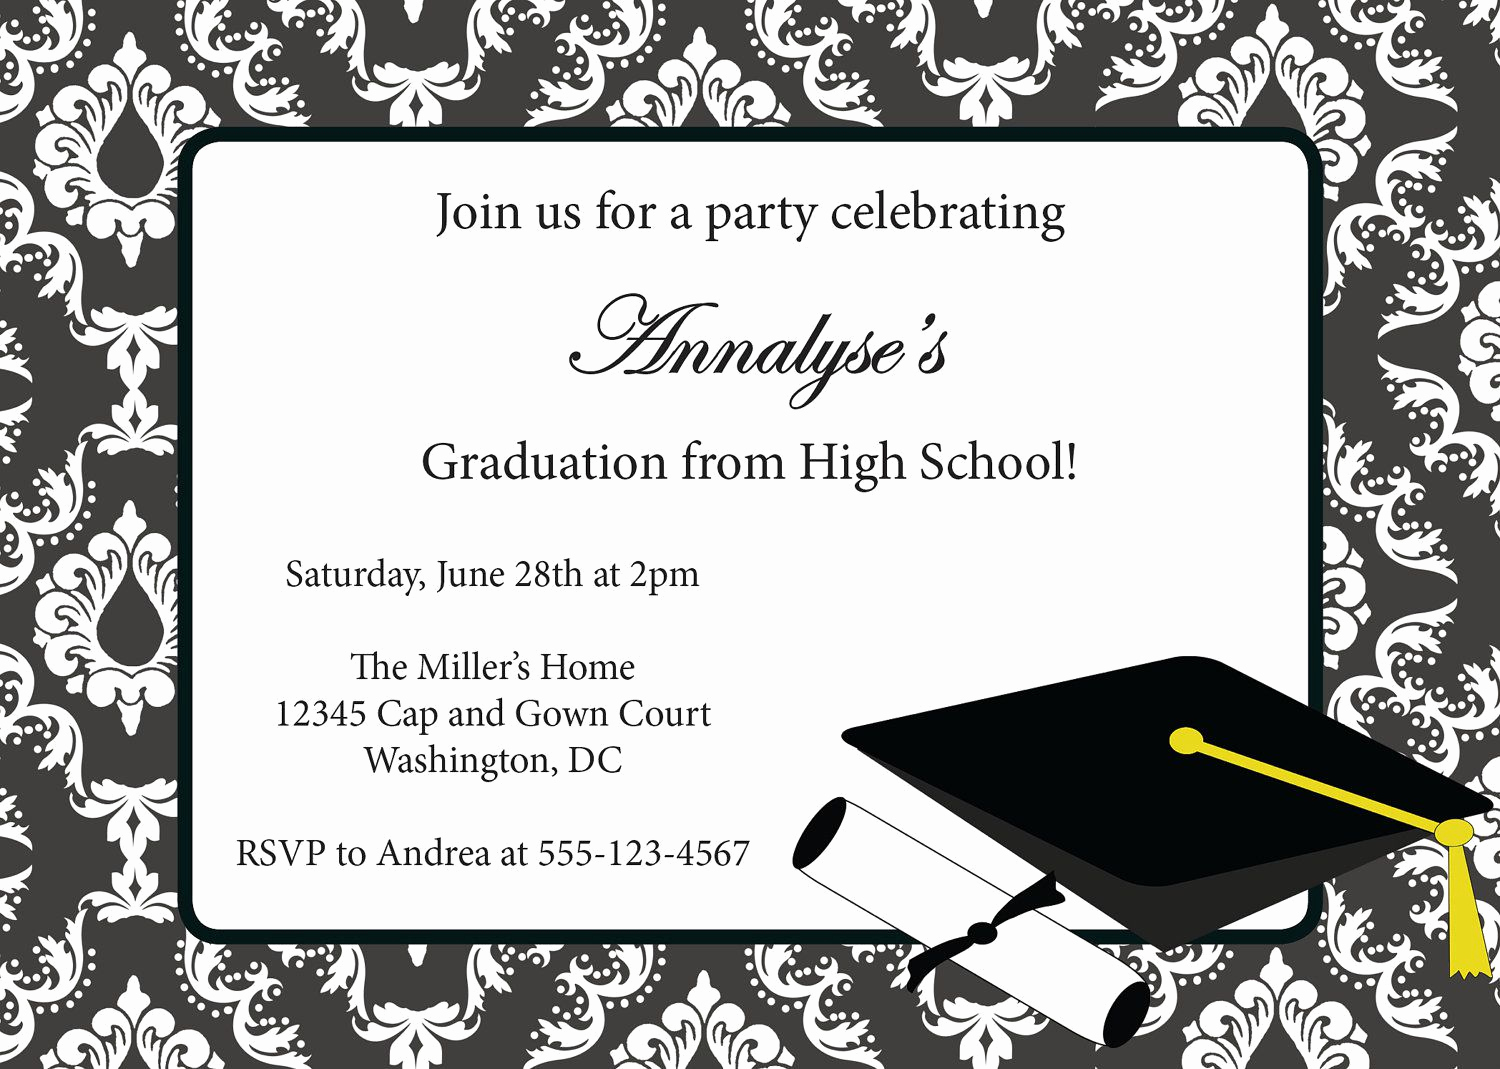 Graduation Party Invitation Wording Samples Lovely Graduation Invitations Invitation Card for Graduation